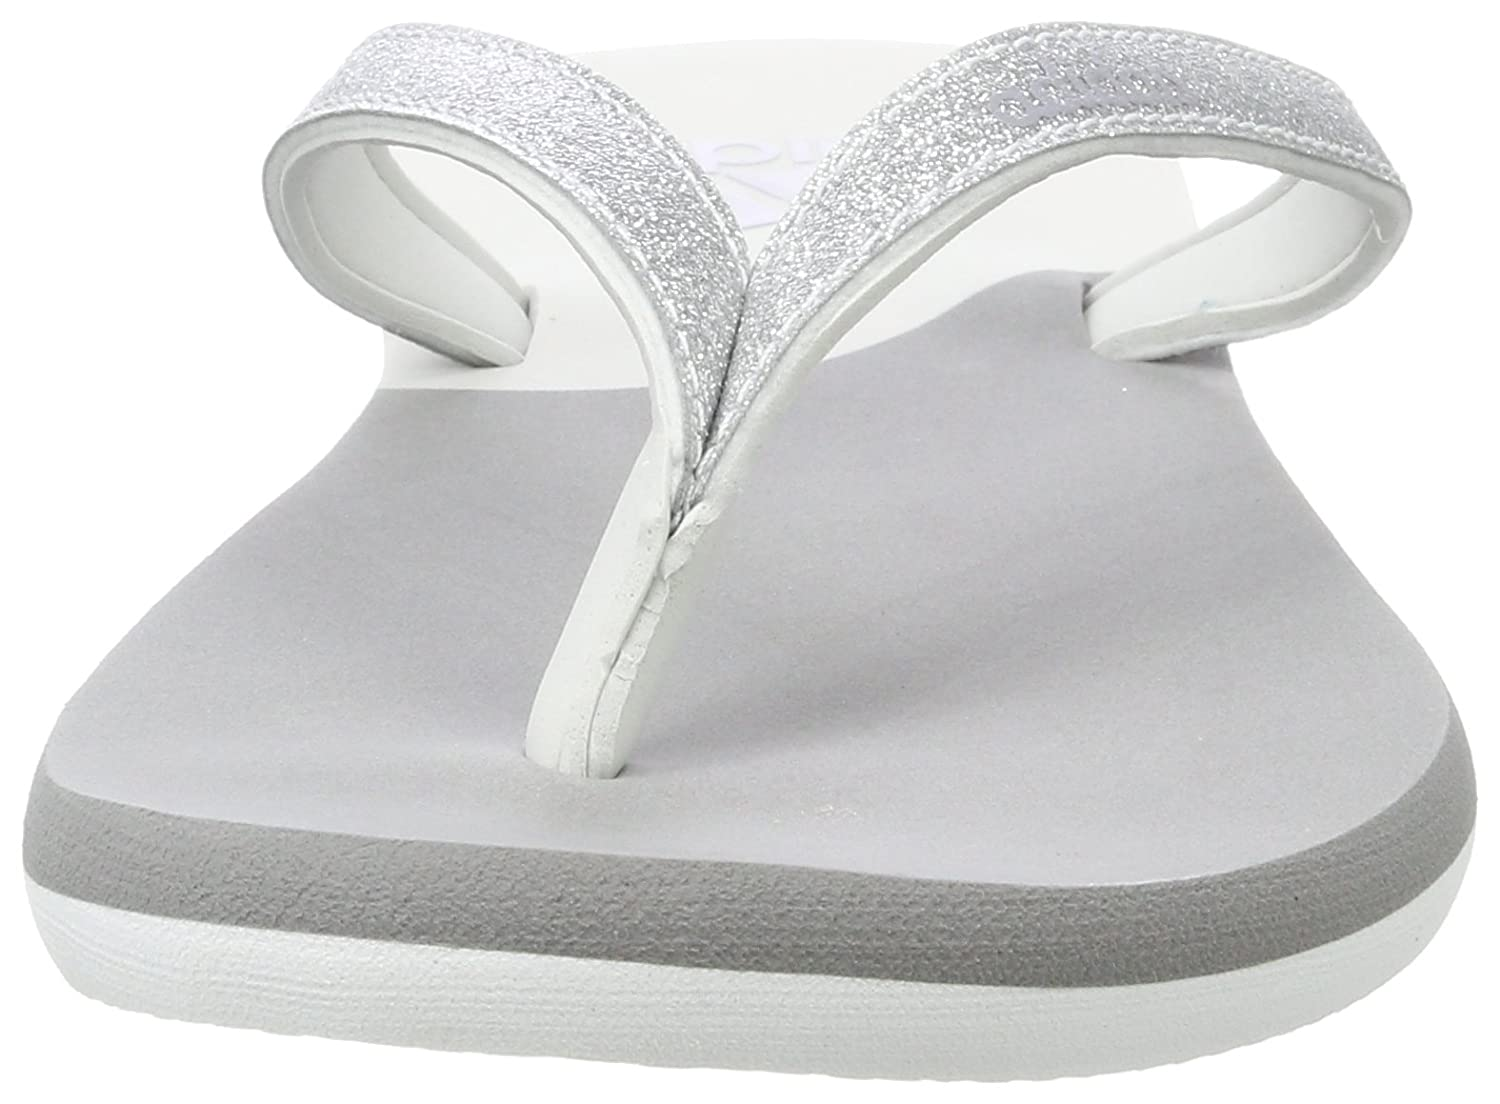 1441aeea9513 Adidas Women s Eezay Glitter W Grethr Msilve Greone House Slippers - 4  UK India (36.67 EU) (BB0501)  Buy Online at Low Prices in India - Amazon.in